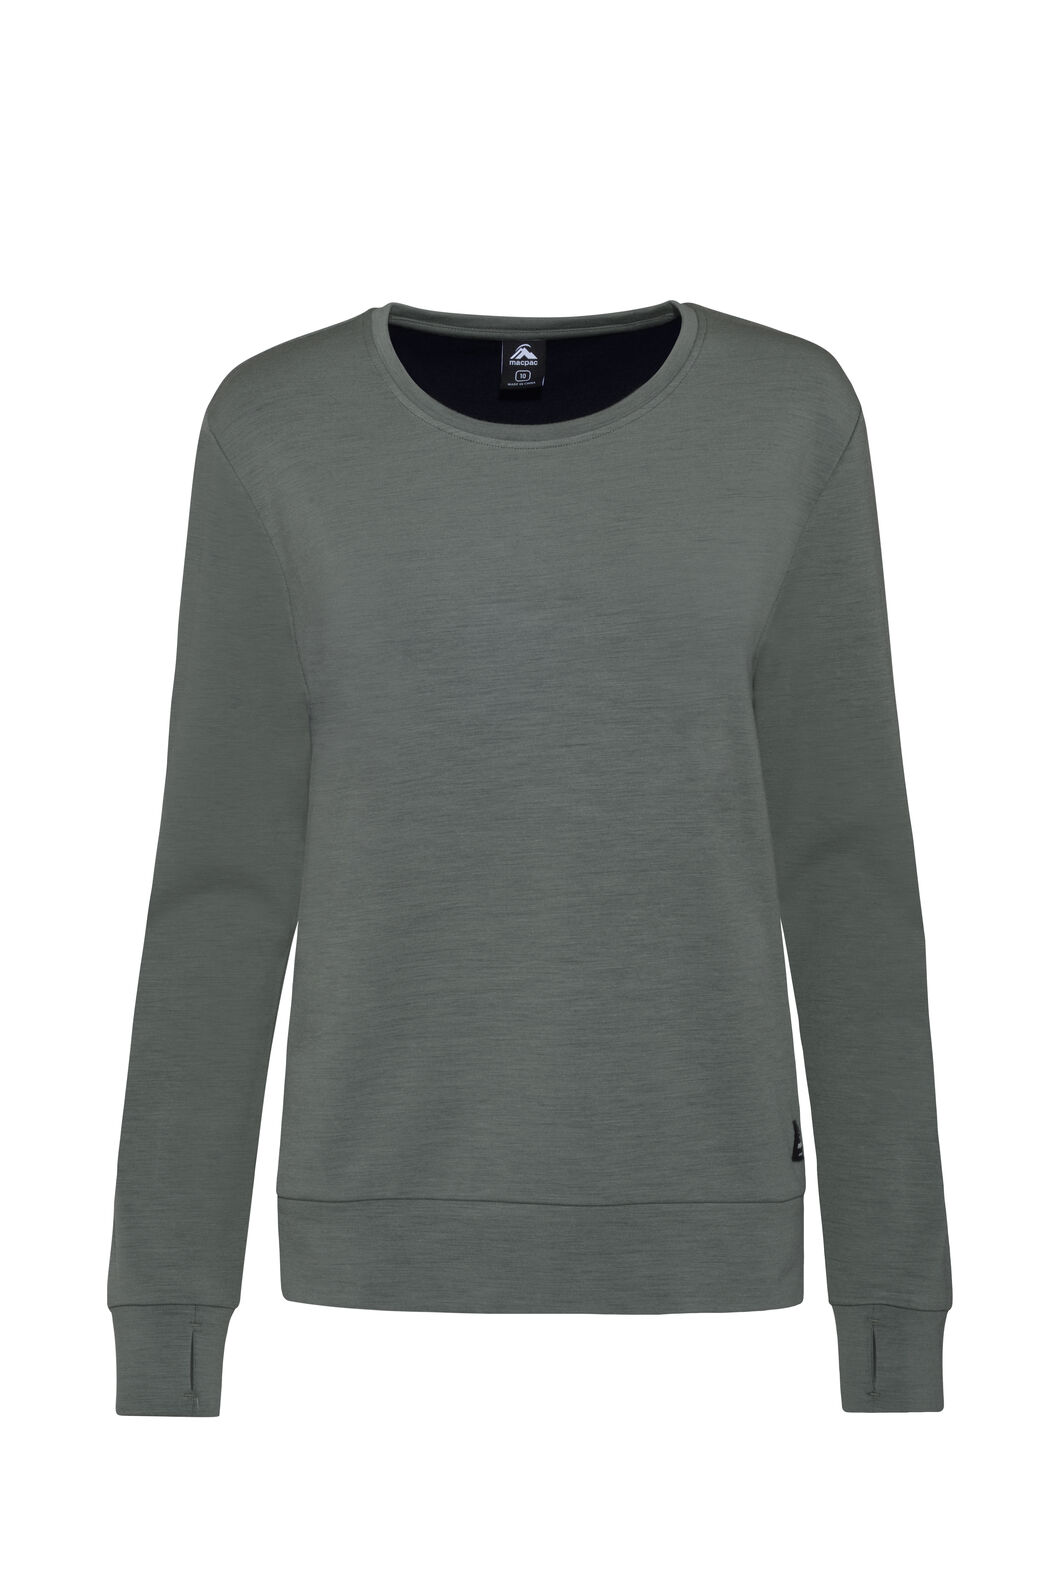 Macpac Merino 280 Long Sleeve Crew — Women's, Sea Spray, hi-res